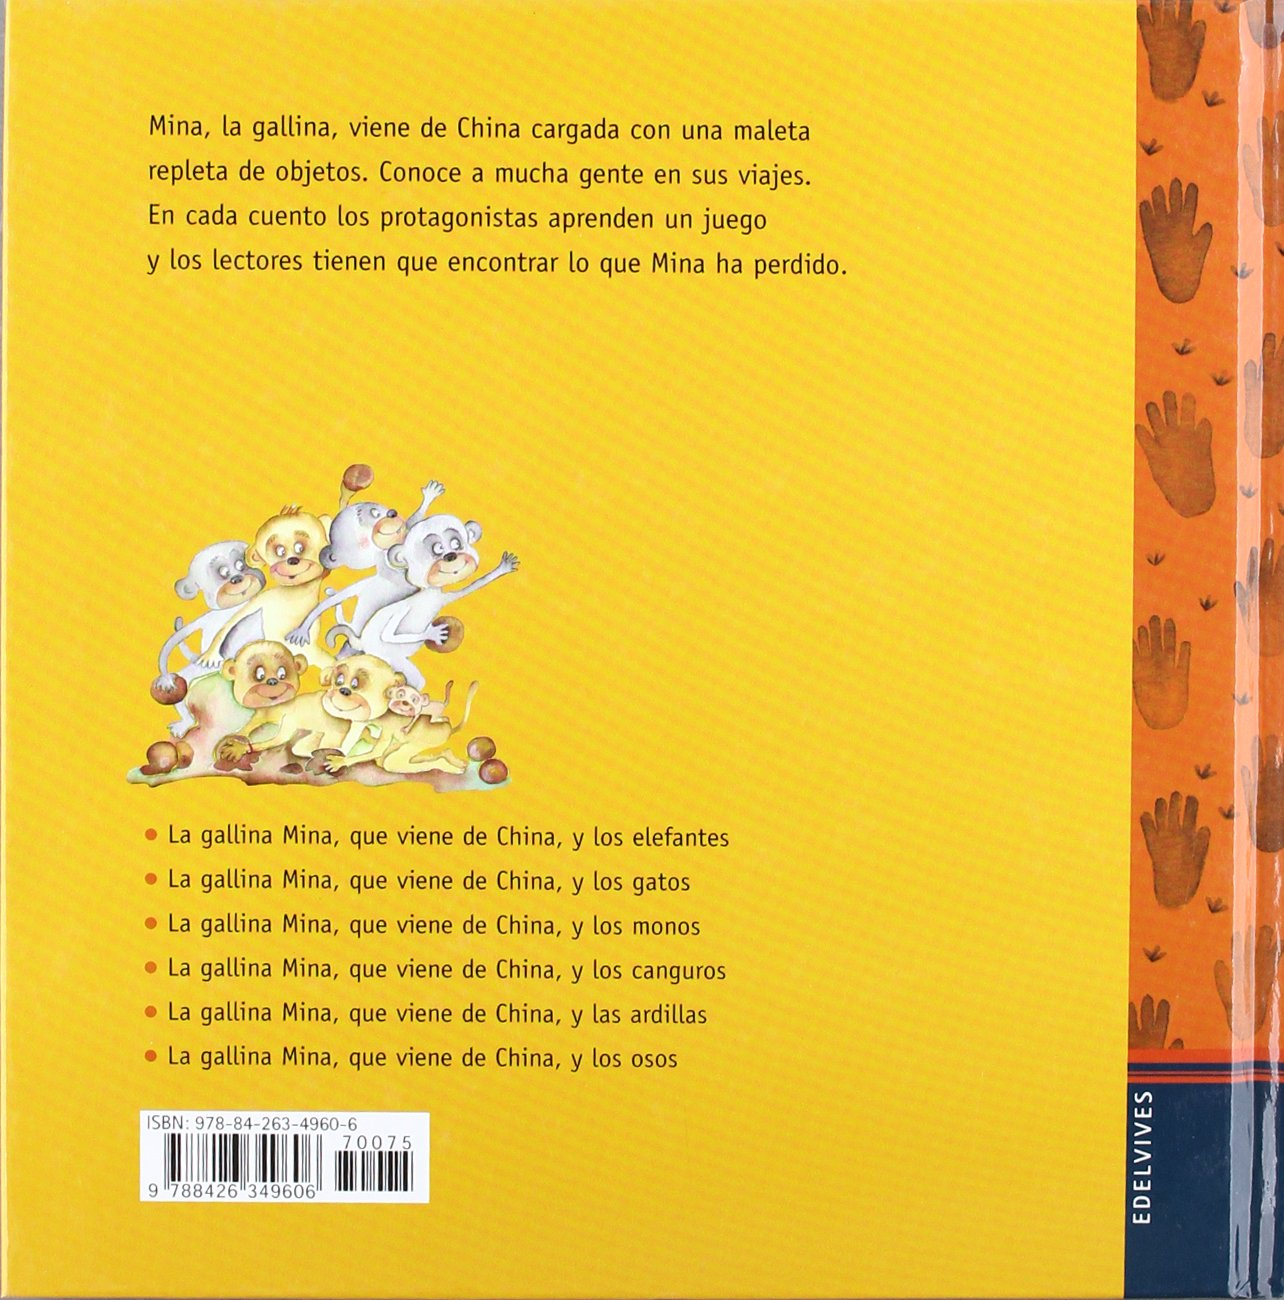 La gallina Mina que viene de China y los monos: Mercè Arànega: 9788426349606: Amazon.com: Books